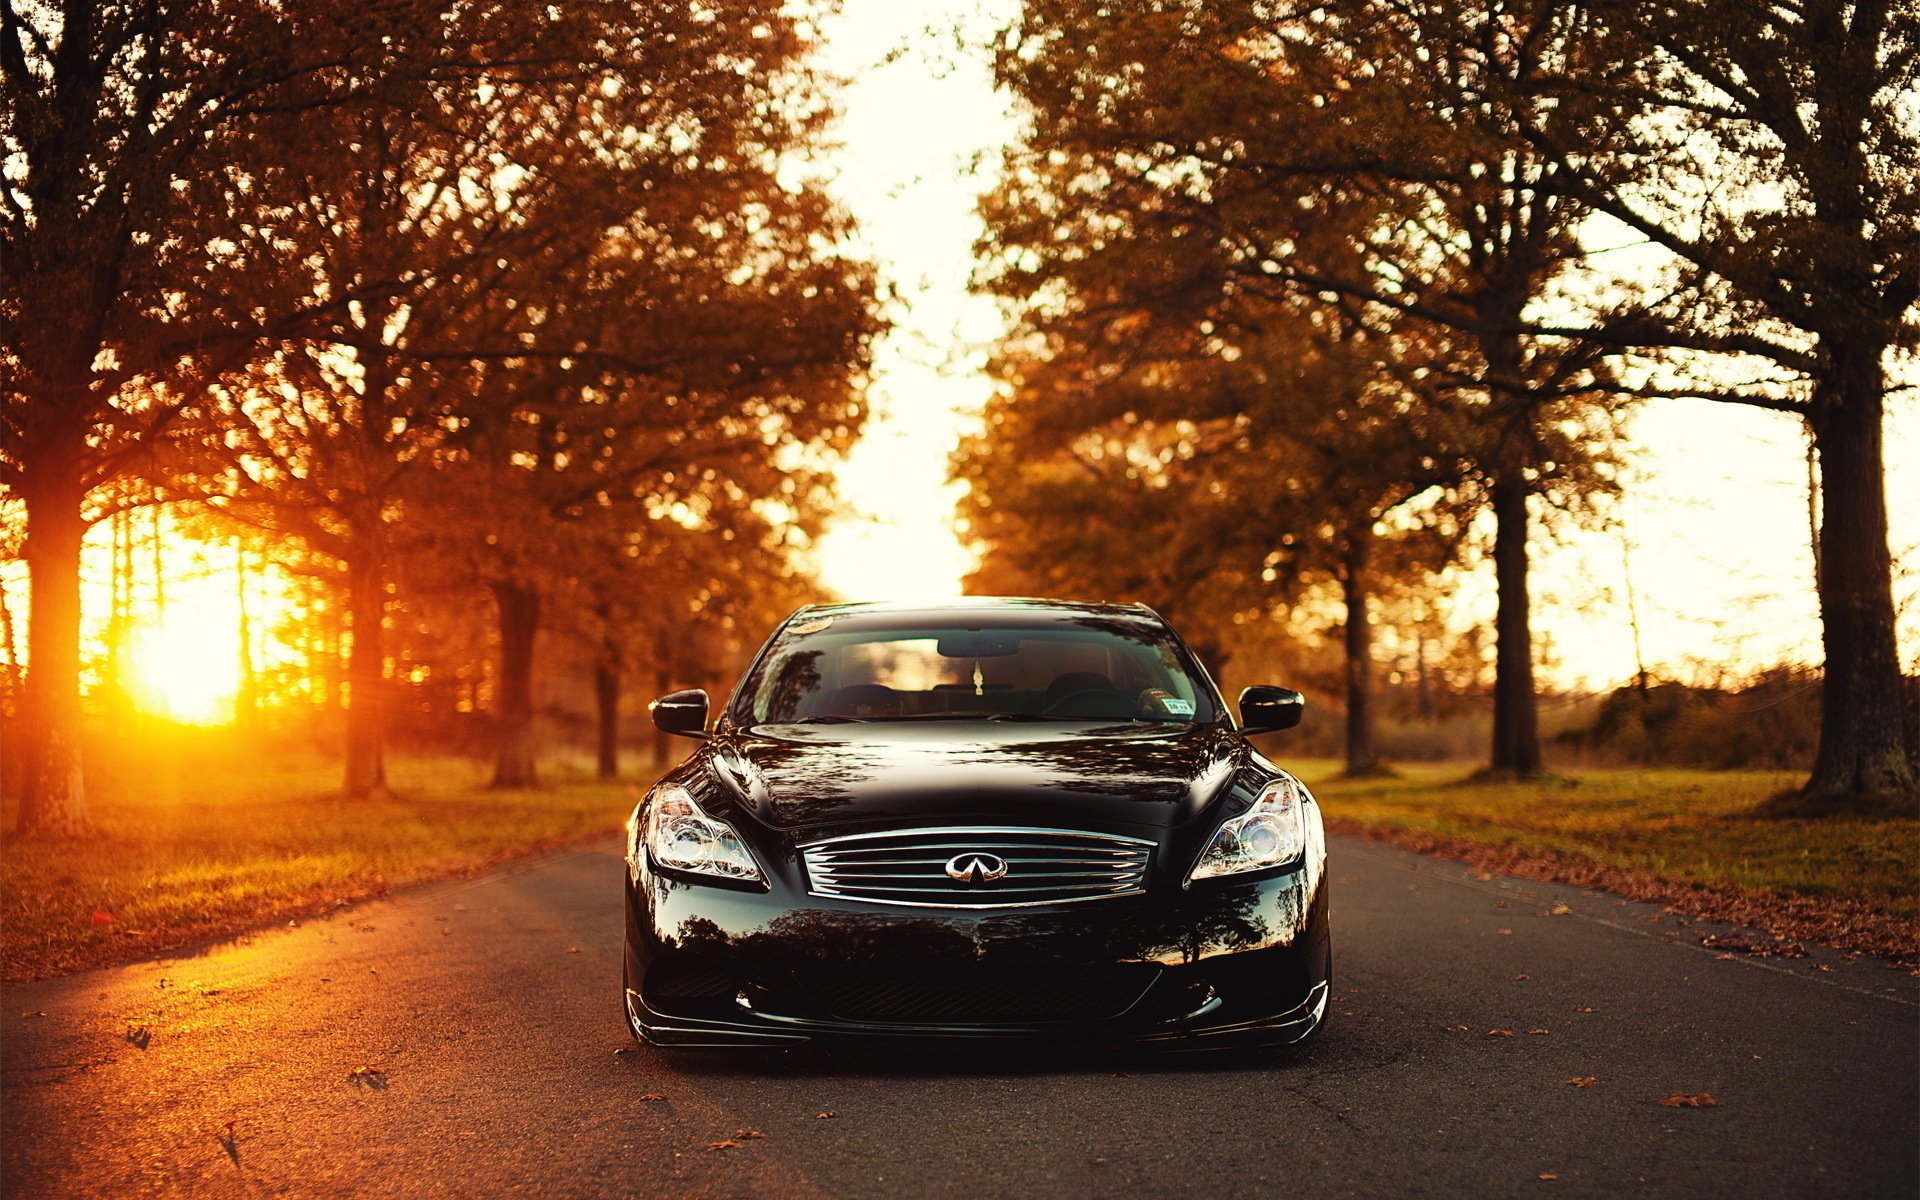 Infiniti G37 wallpapers and images   wallpapers pictures photos 1920x1200